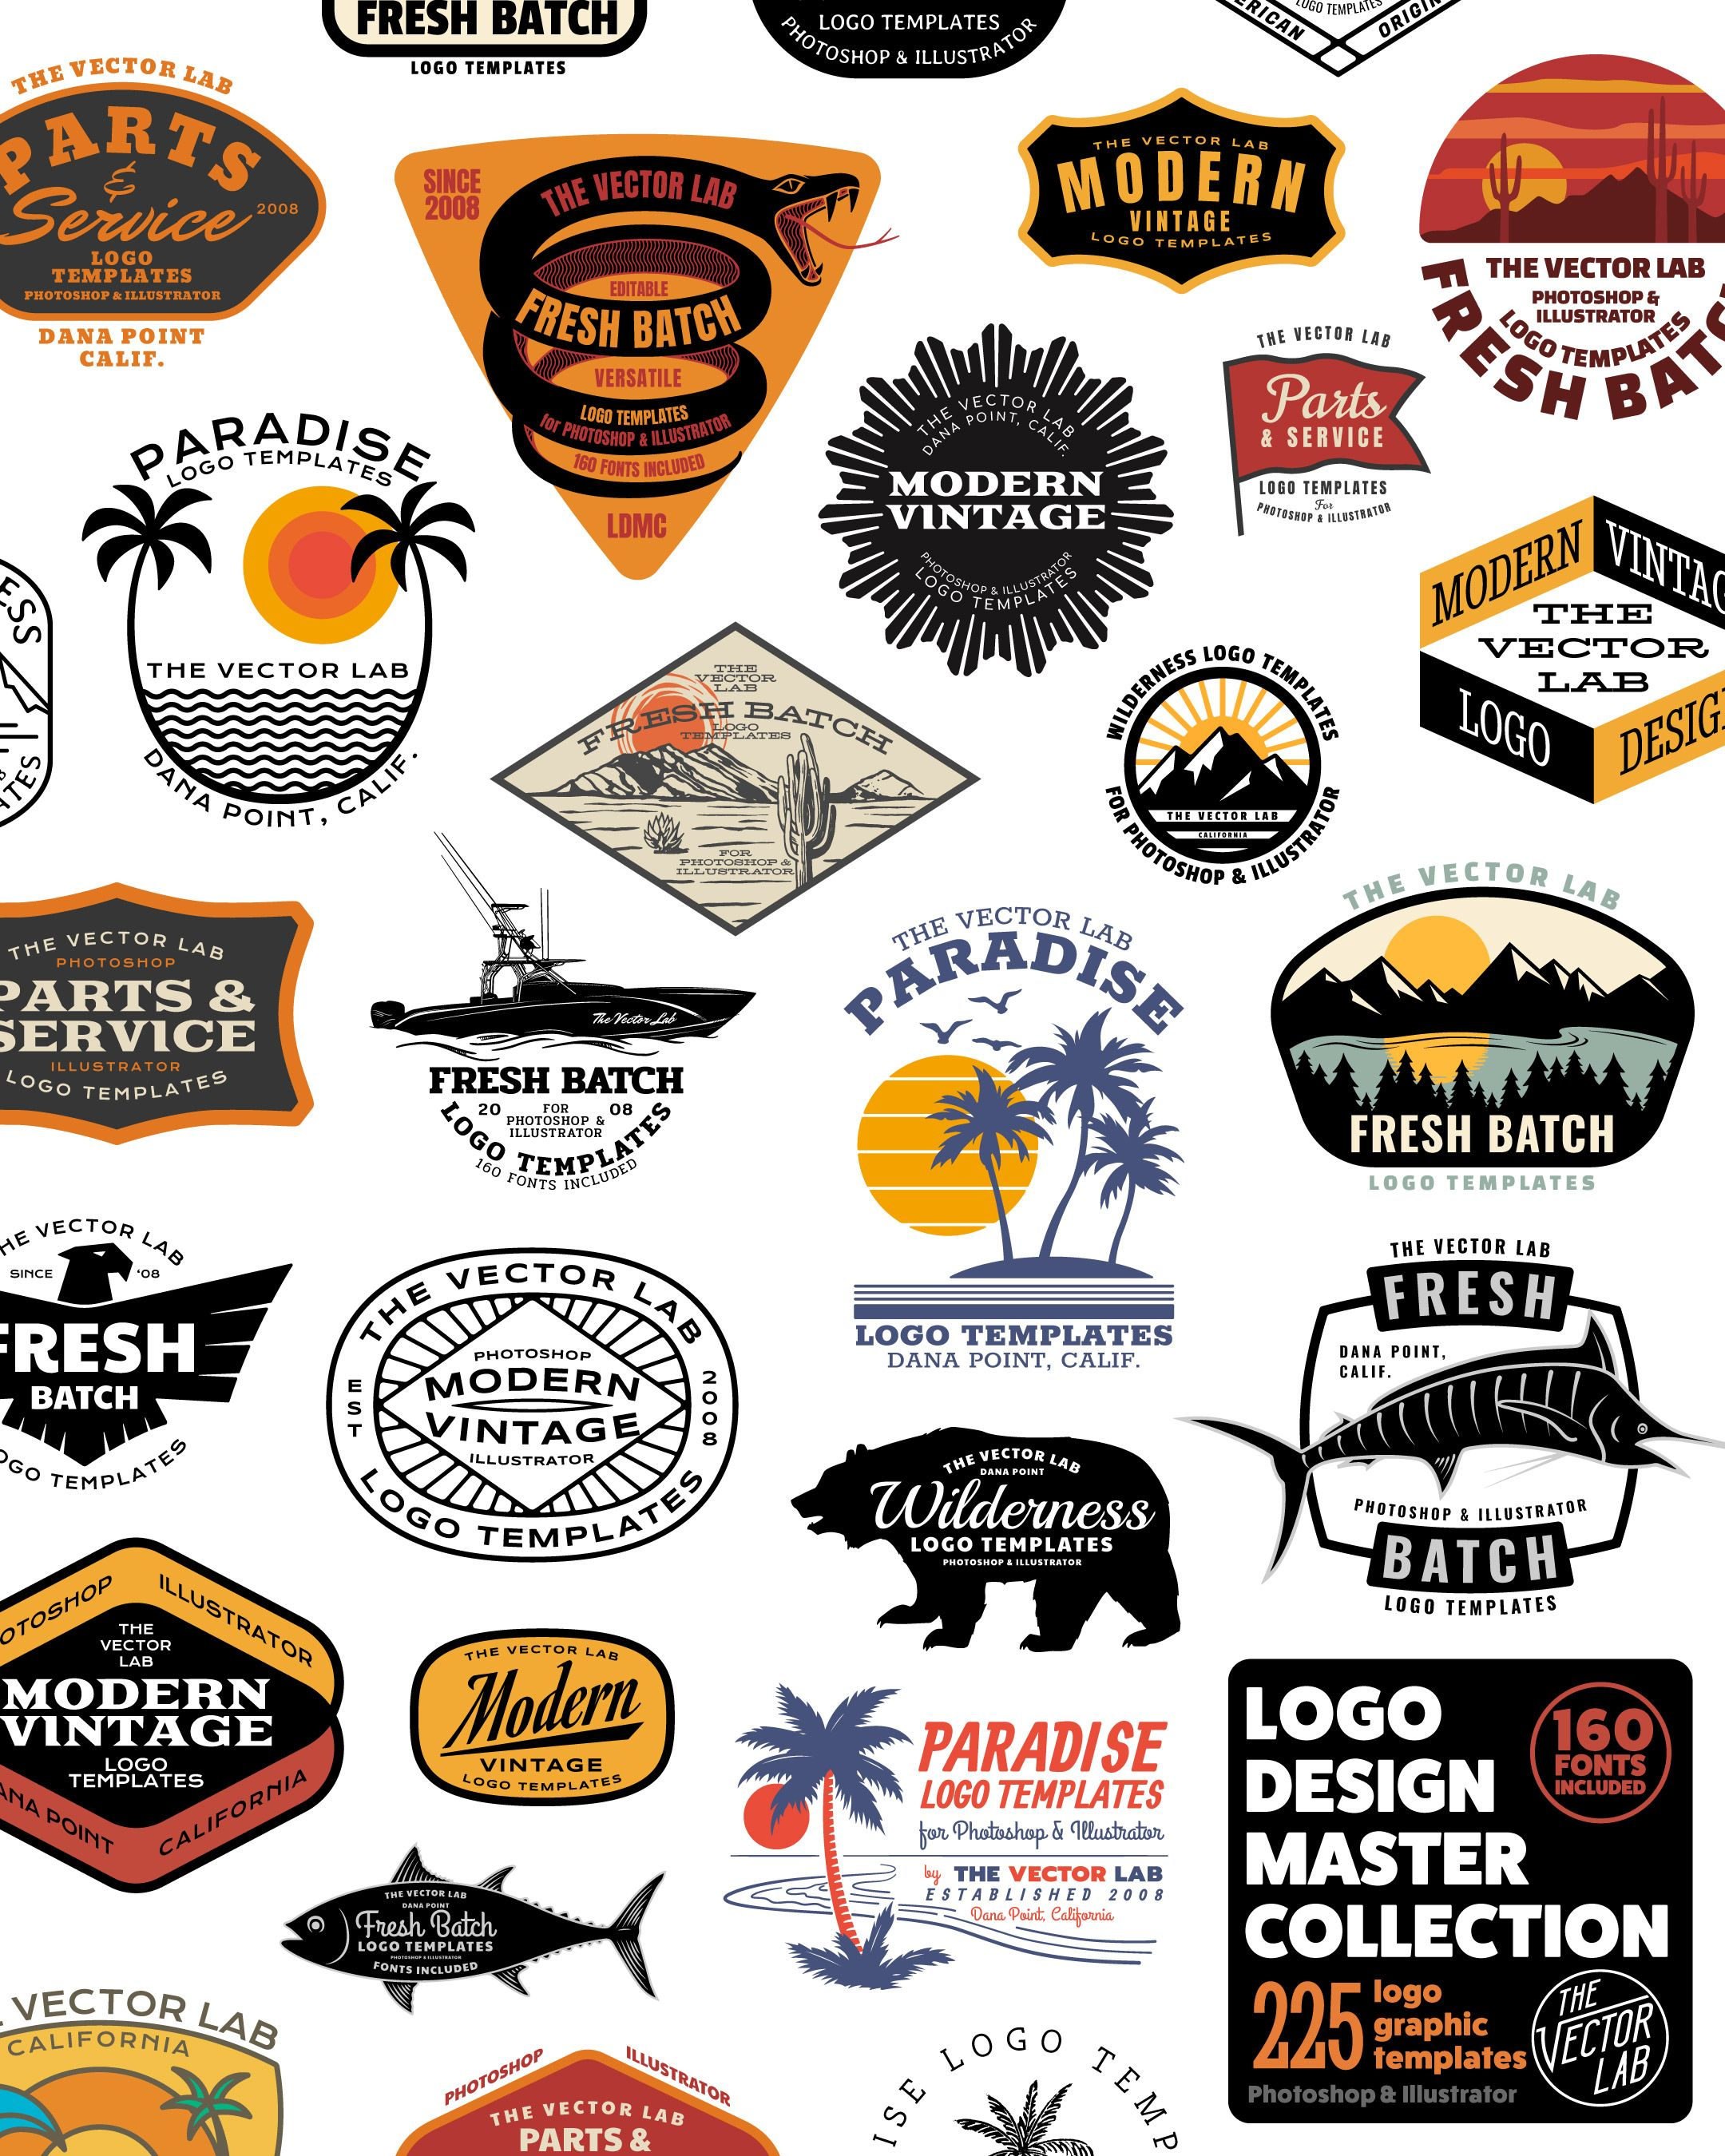 Logo Design Master Collection for Illustrator & Photoshop is part of Logo design - Get all 225 logo templates and 160 fonts in the bundle  Optimized for tshirt designs  You can use also use these for hats, patches, logos, product packaging, embroideries, or anything else that needs a logo   Beginners can easily change the type and colors  Experienced designers can use these designs as a timesaving